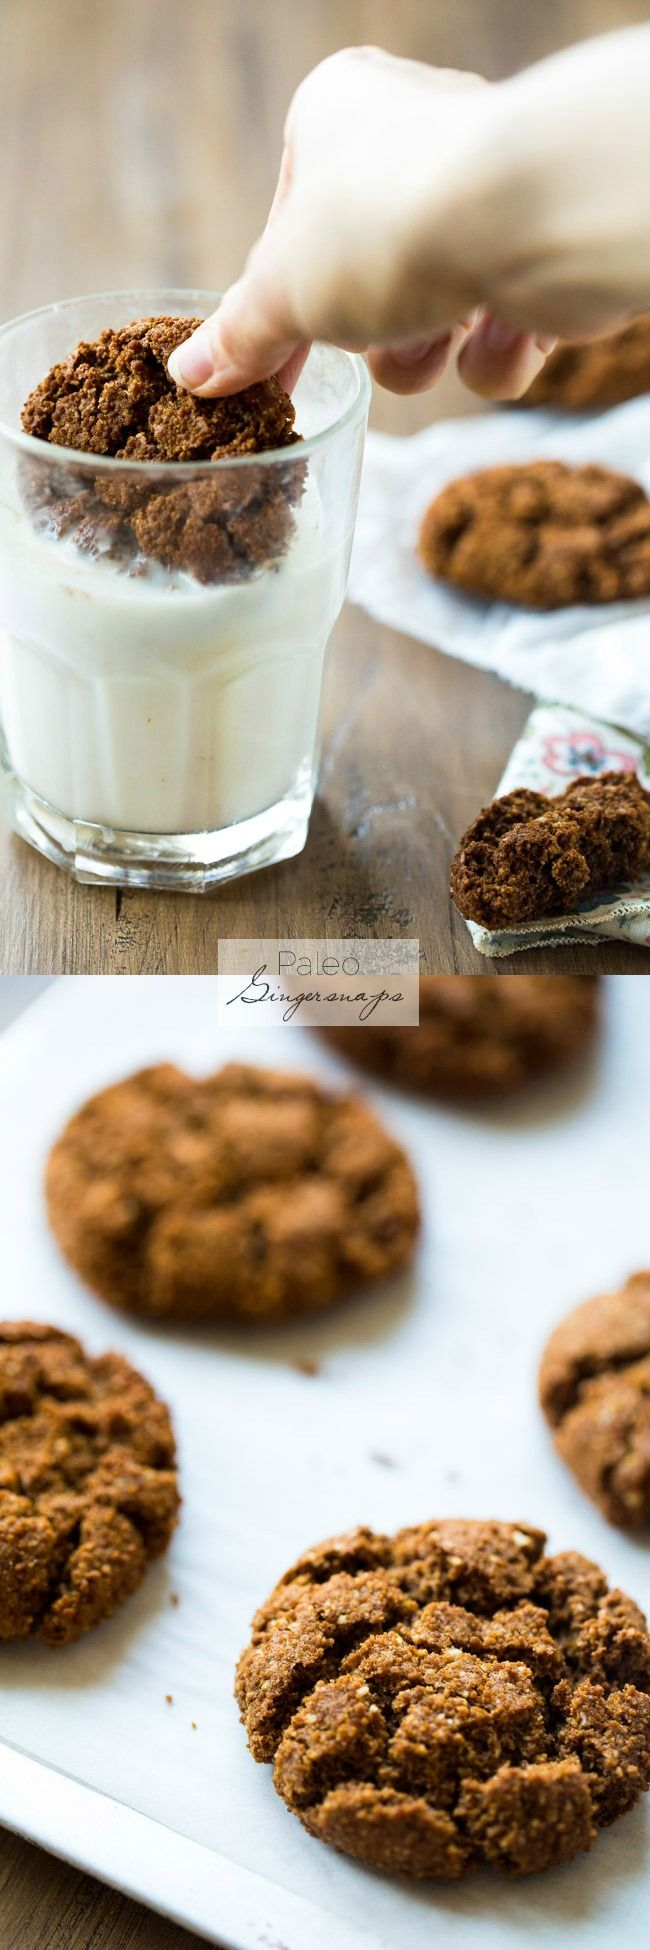 Paleo Gingersnaps - Completely butter free, gluten free and grain free, you will be amazed that these Christmas cookies taste better than Grandmas! Seriously, the best! |